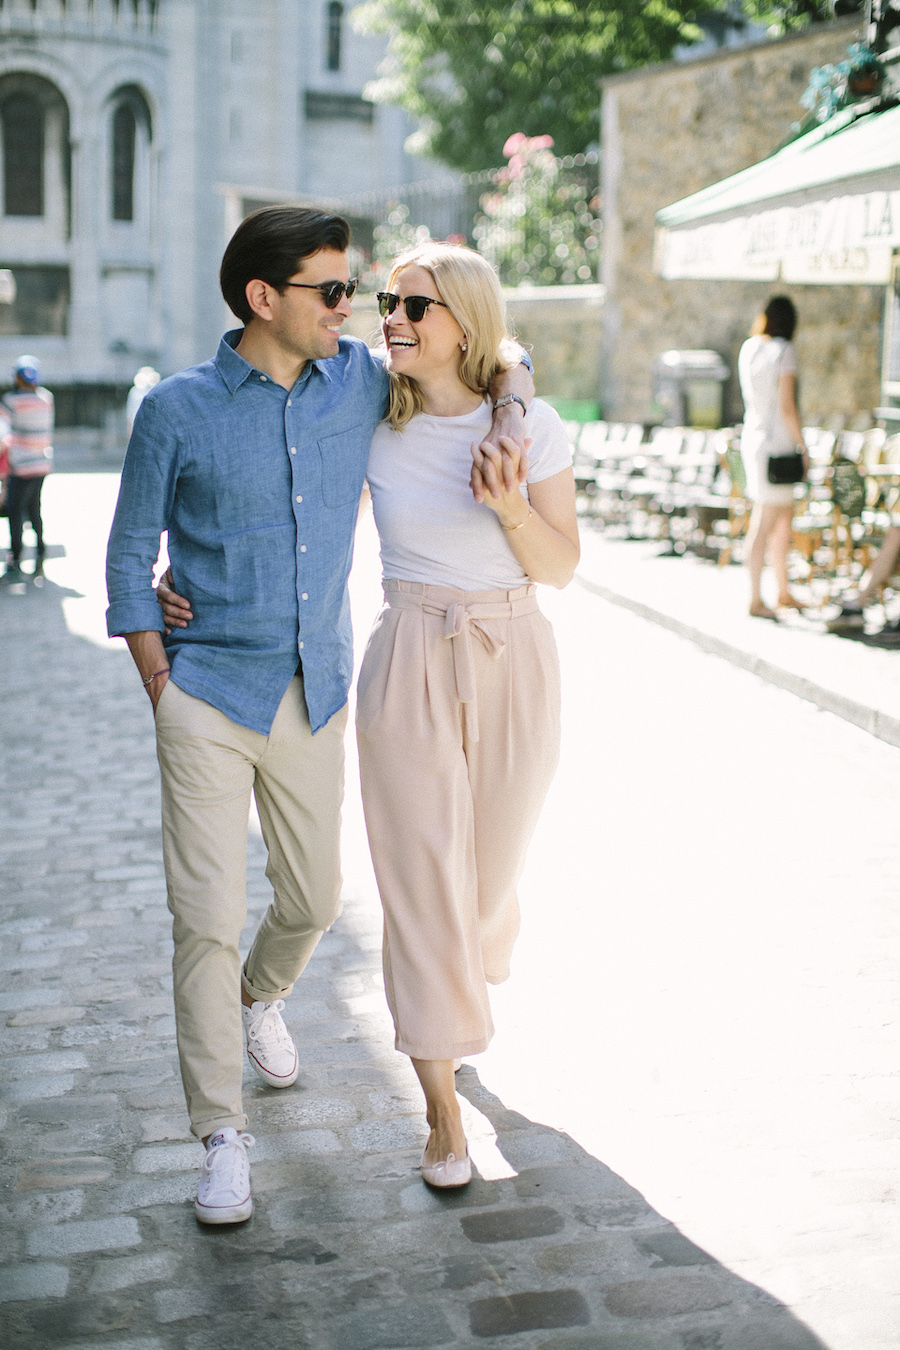 saya-photography-pre-wedding-couple-engagement-paris-montmartre-7.jpg